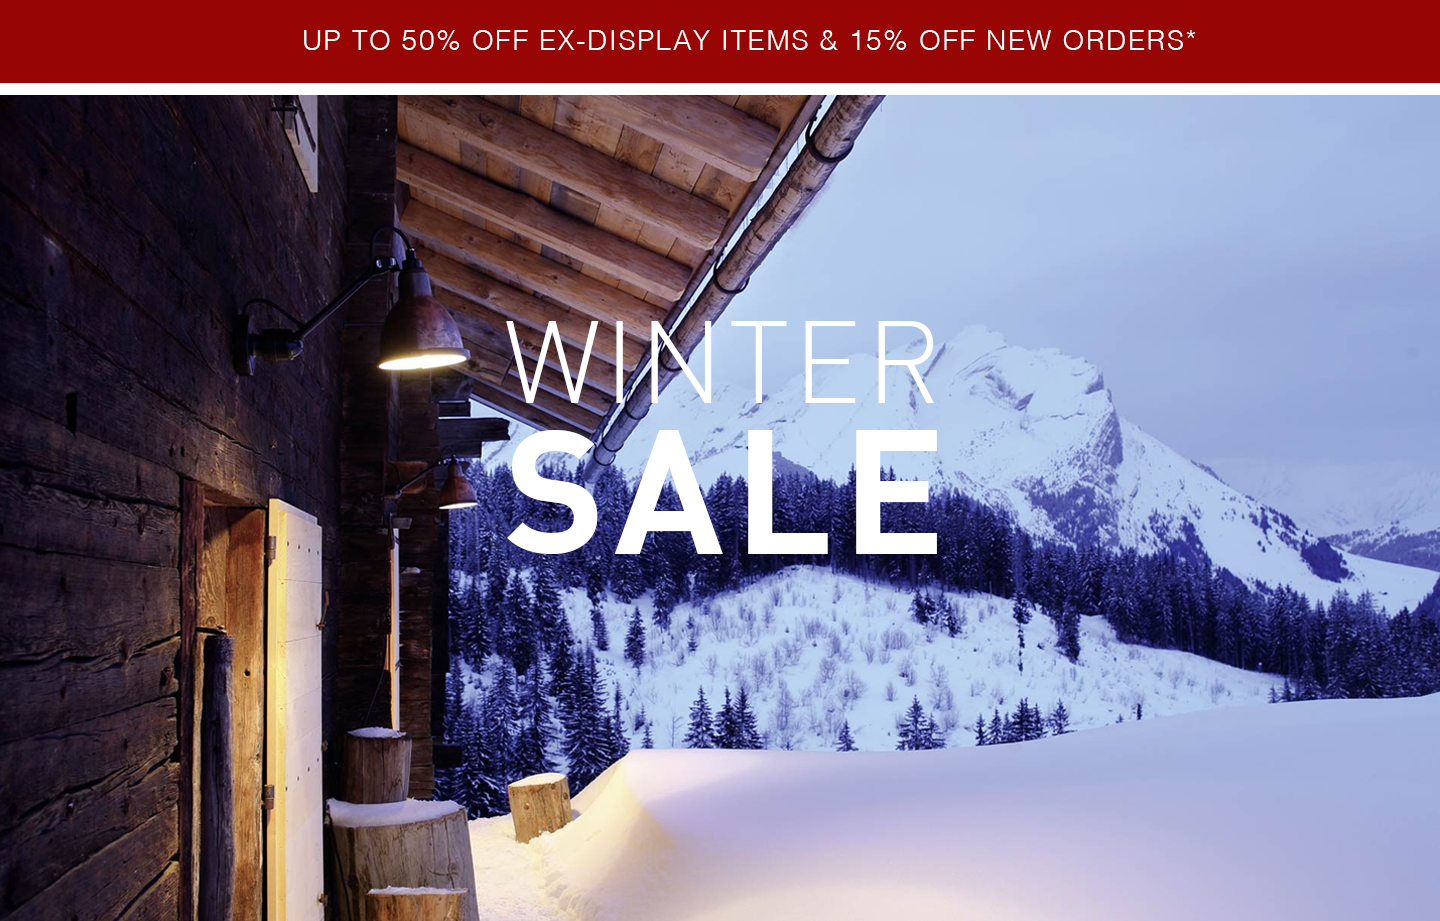 Shop up to 50% off Ex-Display Itemsand15% off New Orders*online and in-store.Sale ends on the4th of February.